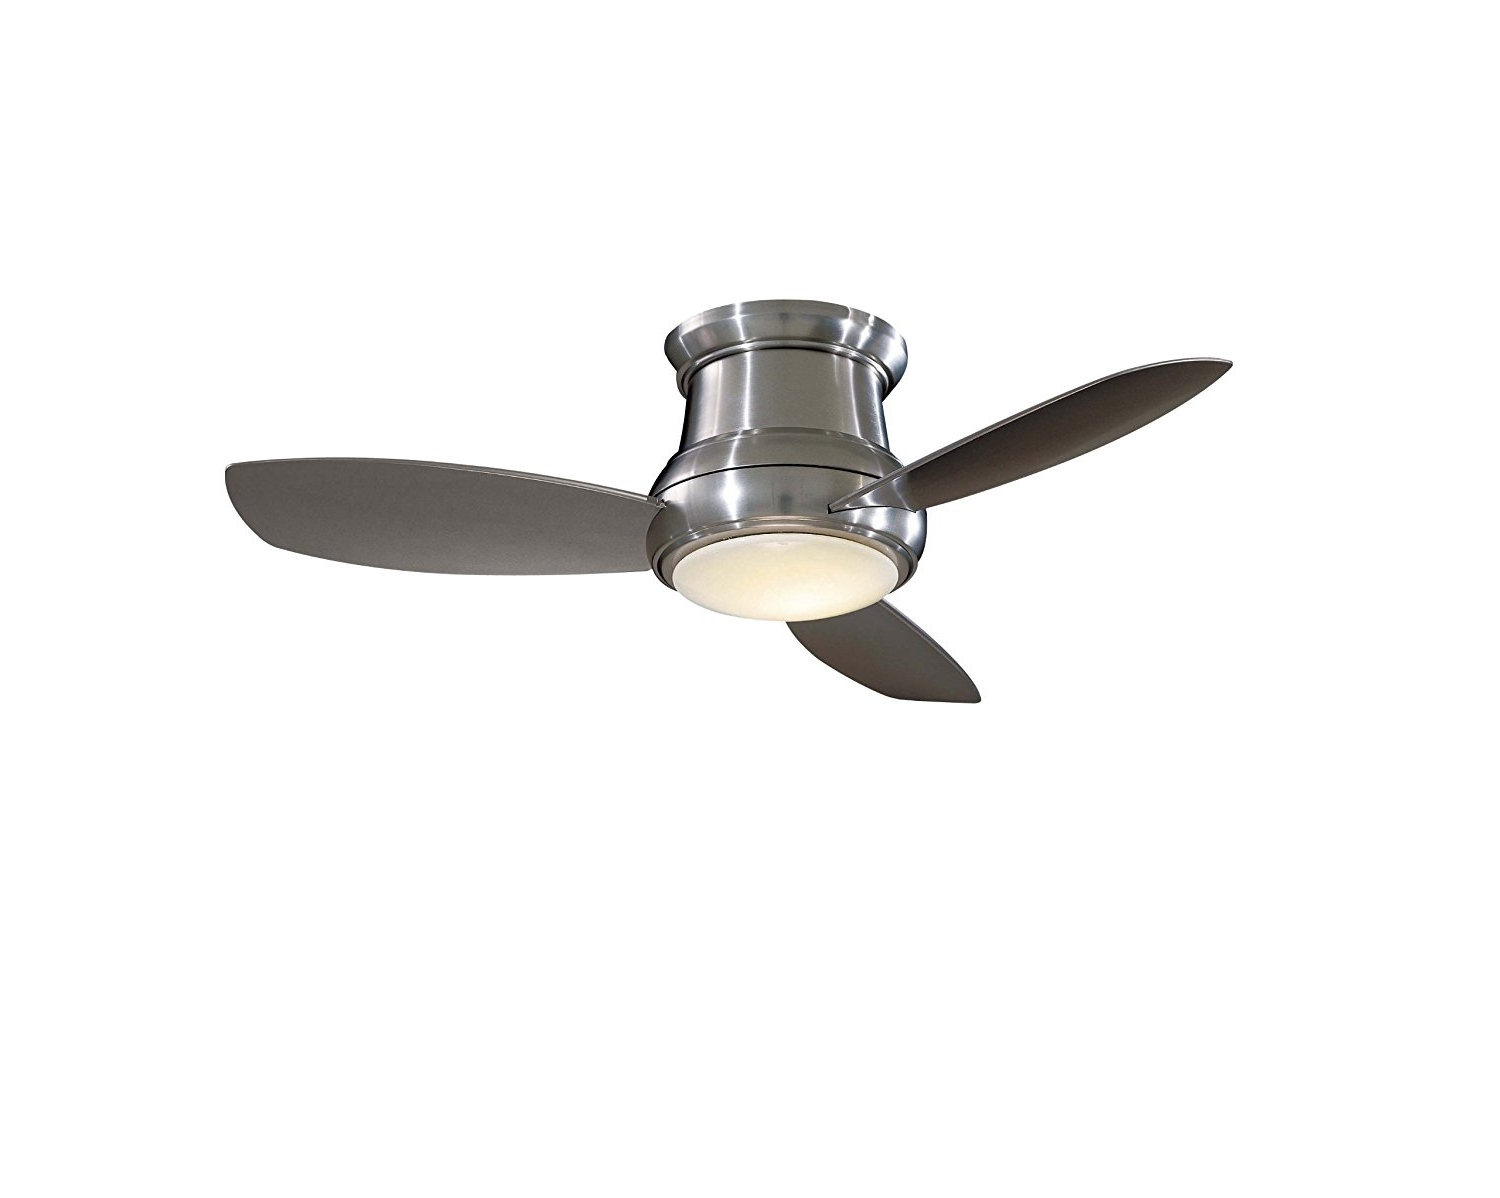 Ceiling Fan: Captivating Flush Mount Ceiling Fan With Light Ideas 32 With Regard To Most Current Outdoor Ceiling Fans For 7 Foot Ceilings (Gallery 8 of 20)